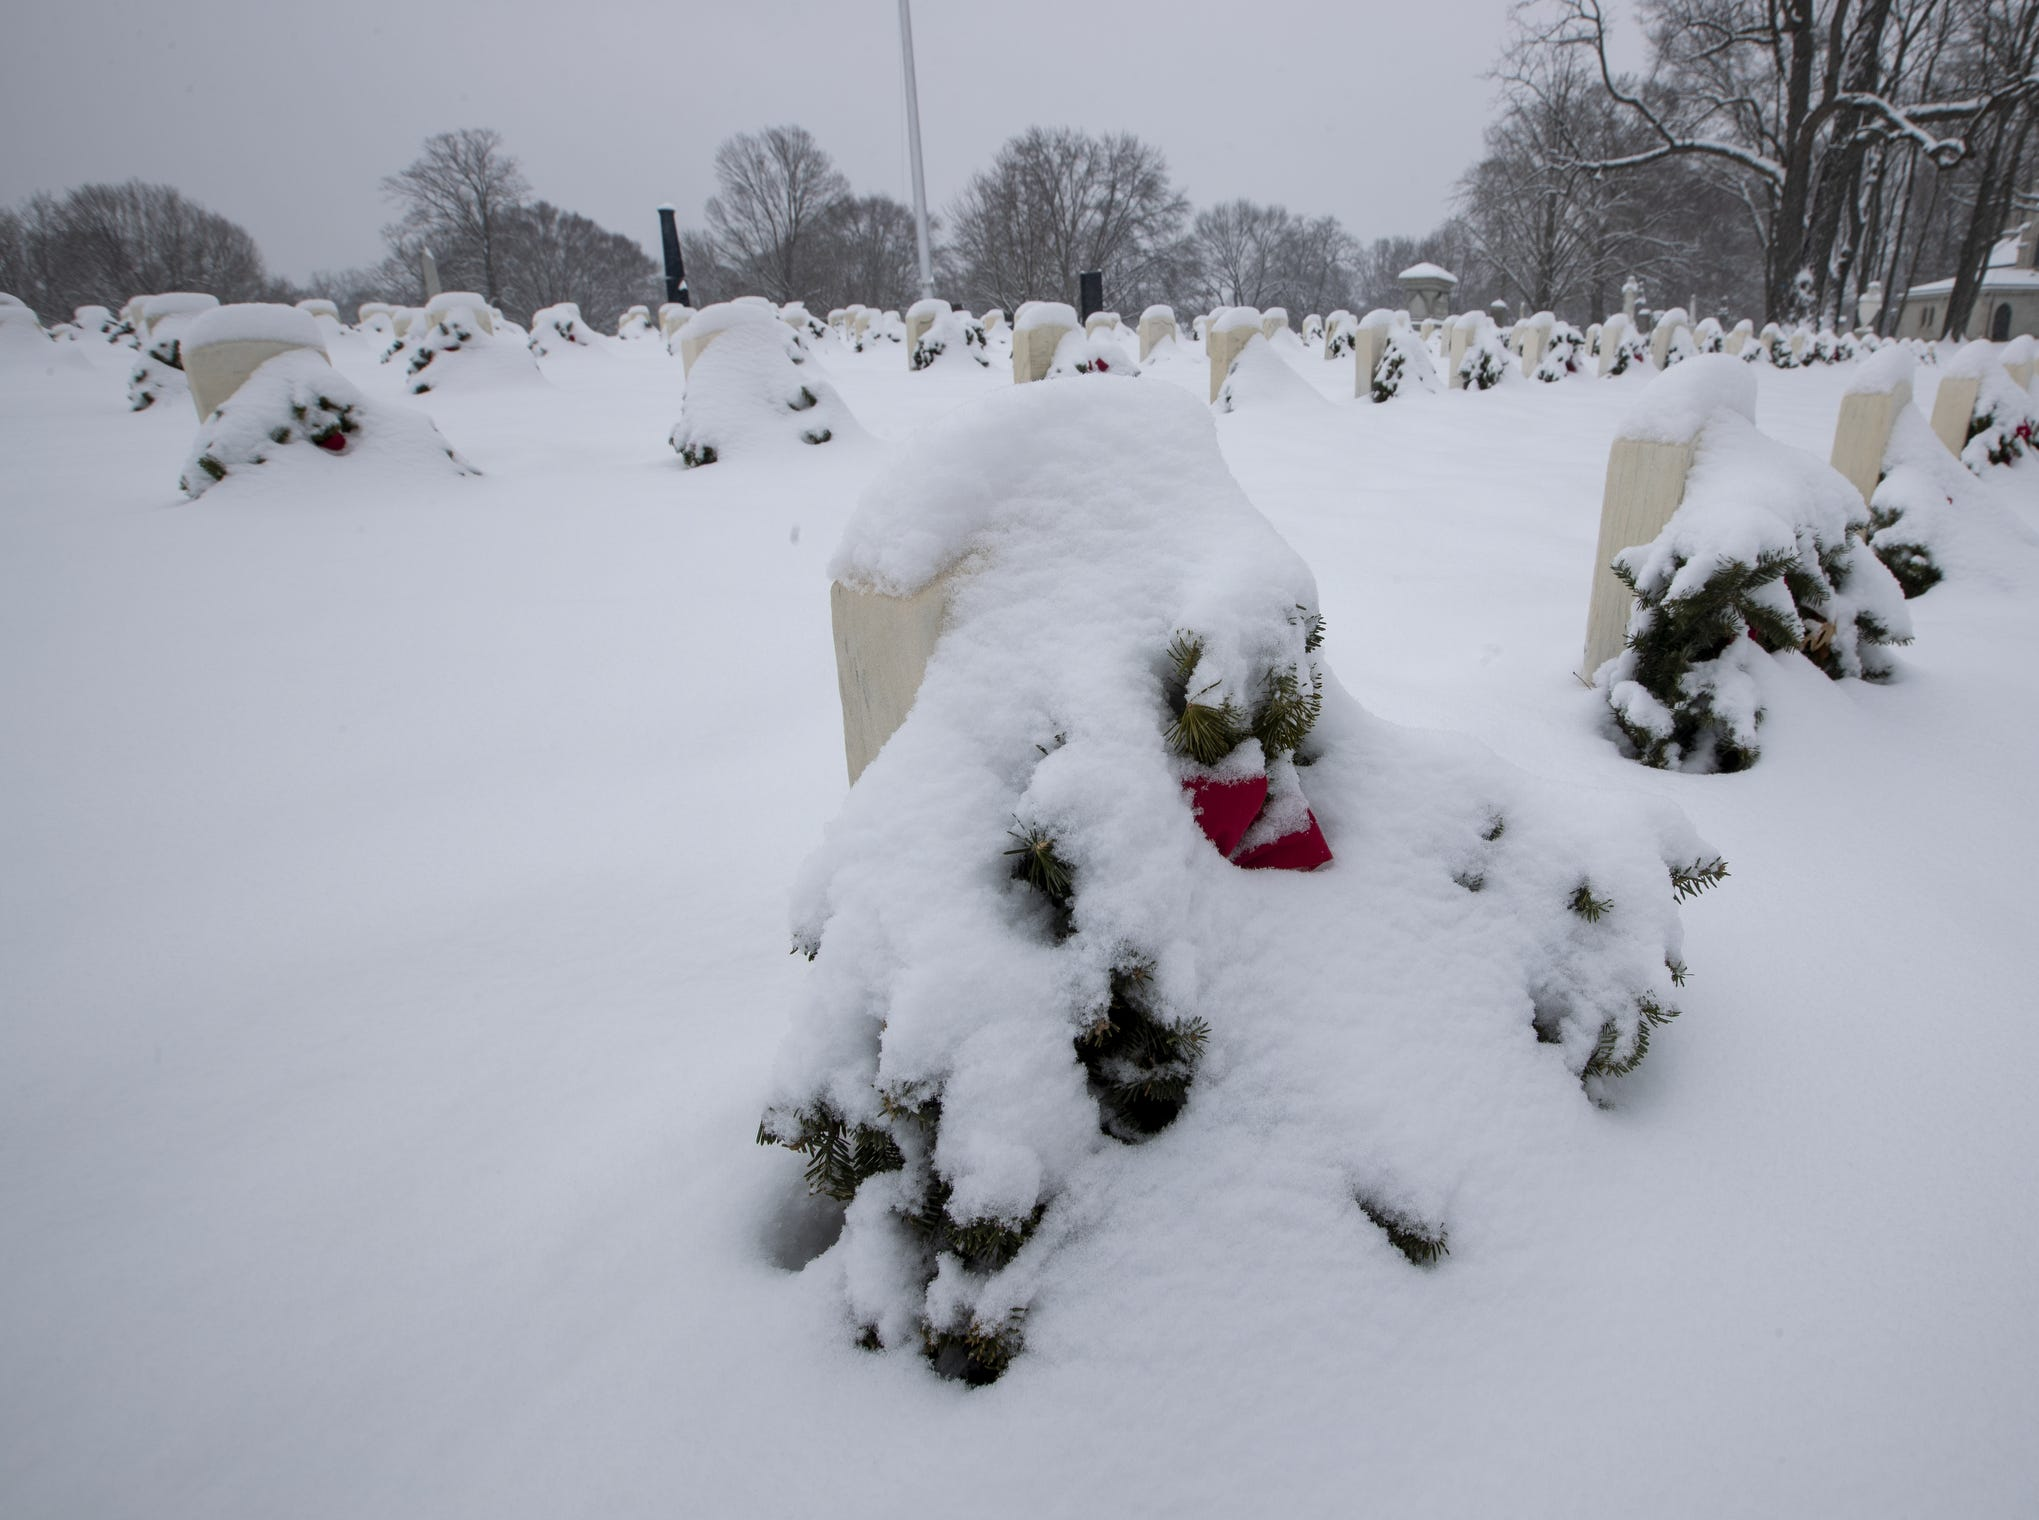 Headstones covered in snow at the Blue Star Memorial section of Crown Hill Cemetery, on a day where 5-7 inches of snow is expected to fall in Central Indiana, Indianapolis, Saturday, Jan. 12, 2019.